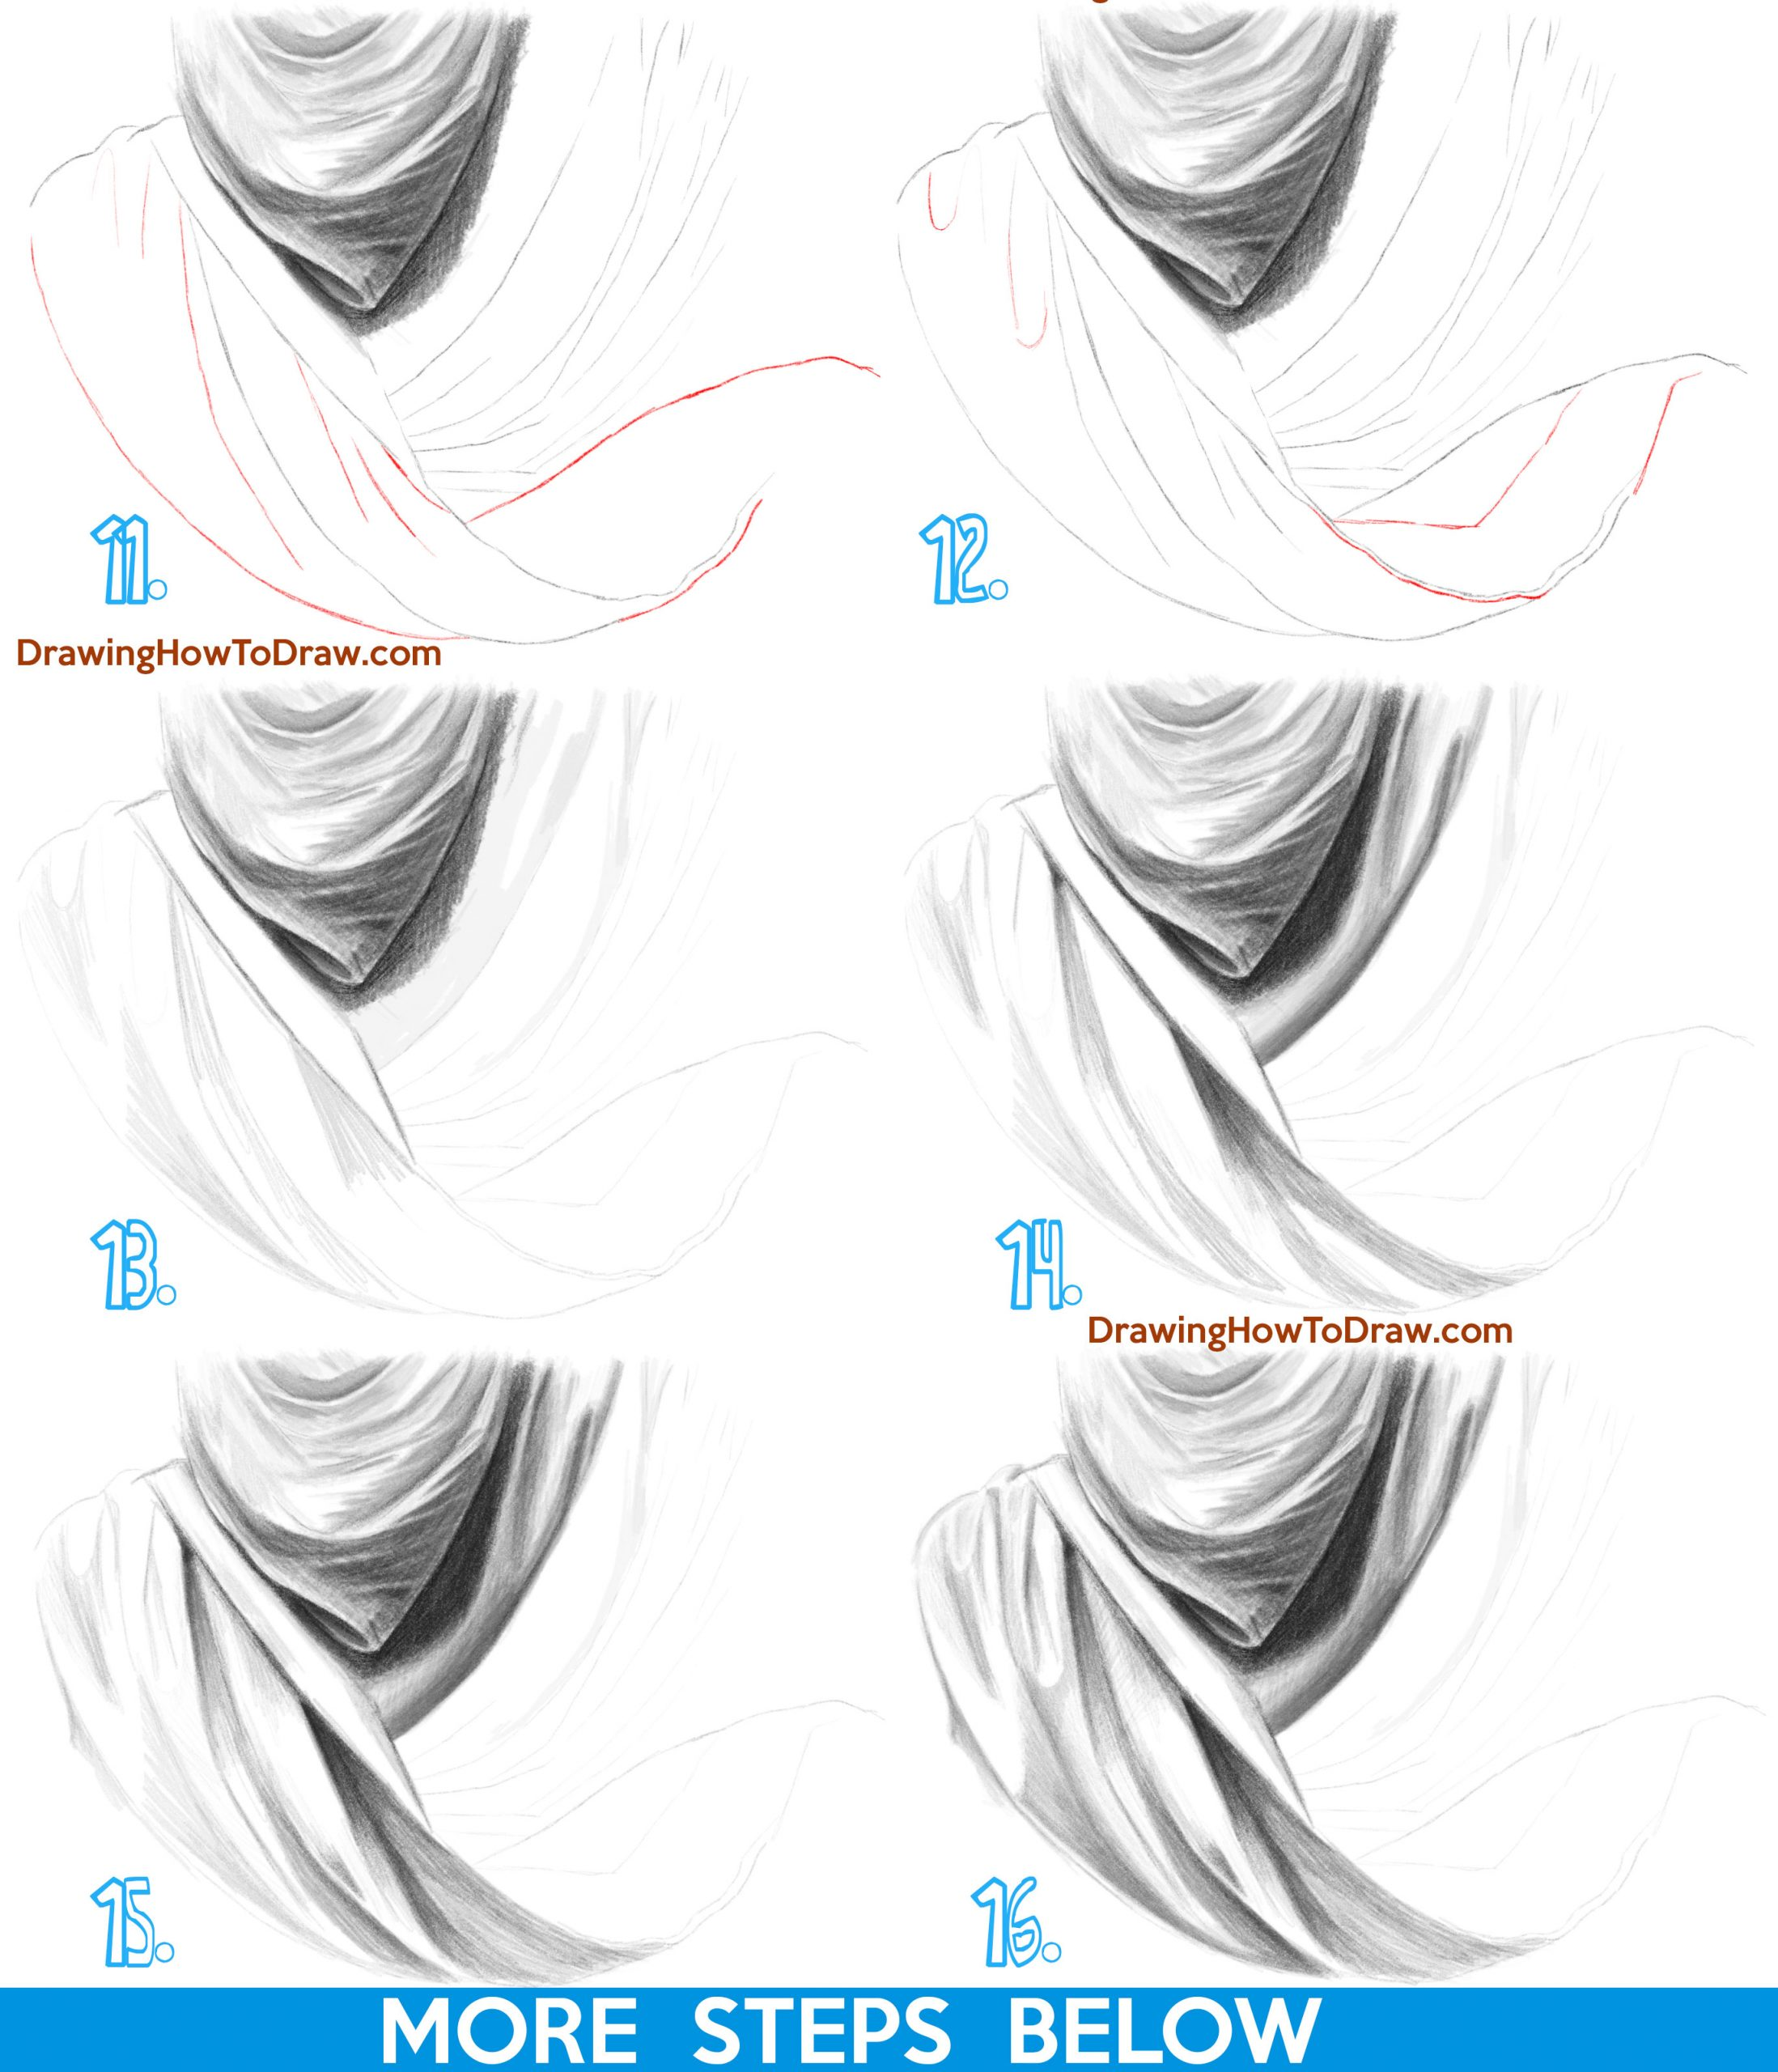 How to Draw Draped Fabric with Creased Folds, Wrinkles on Clothing Fabric and Drapery step by step drawing tutorial easy